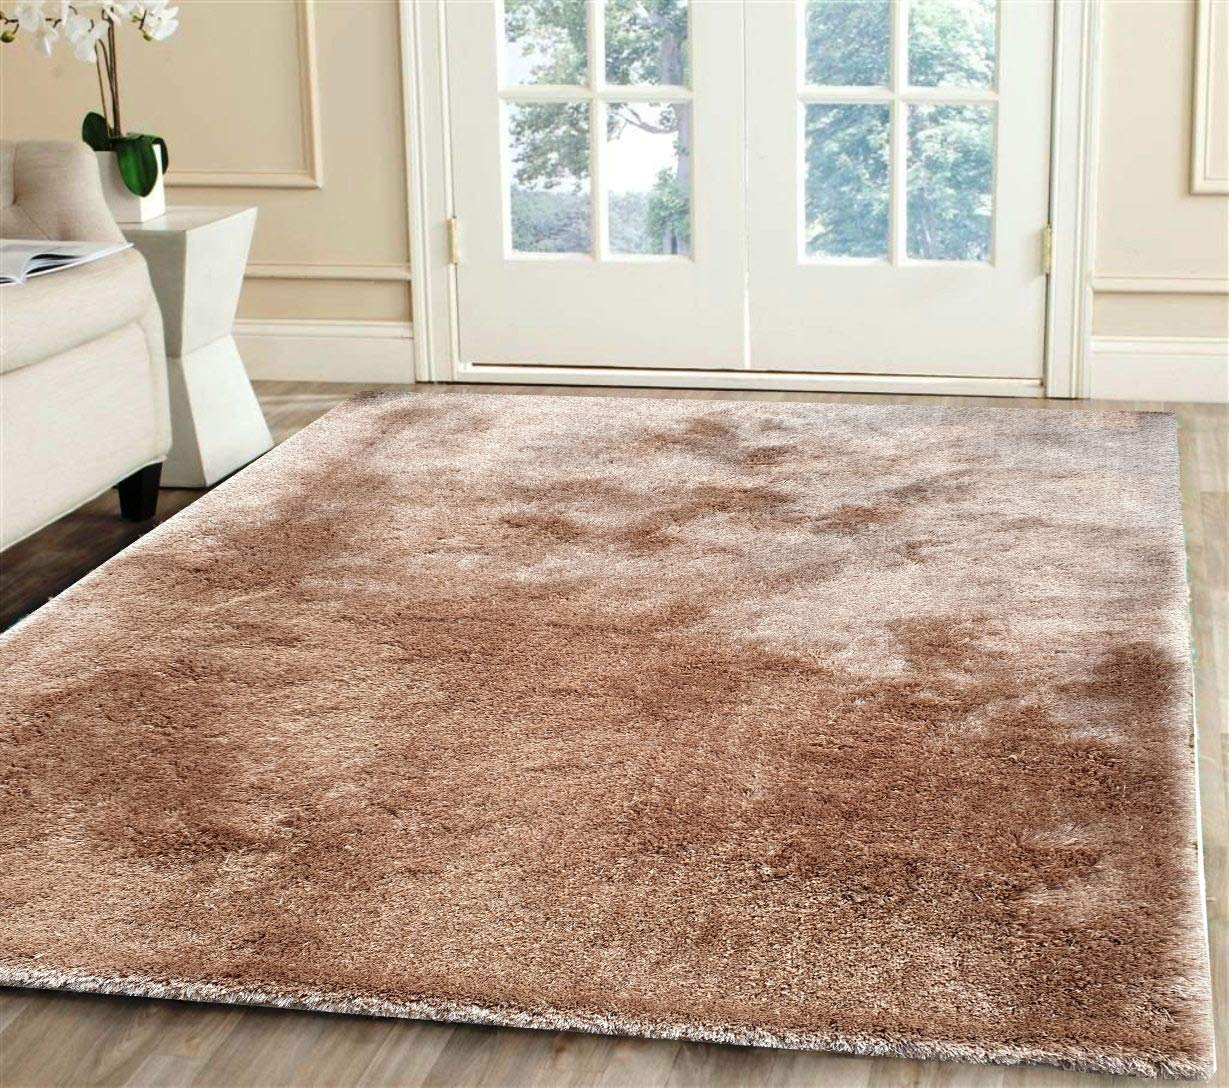 Buy Imra Carpet Soft Modern Shag Area Rugs Fluffy Living Room Carpet Bedroom Home Decorate Floor Kids Playing Mat 7 Feet By 10 Feet Black Online At Low Prices In India Amazon In